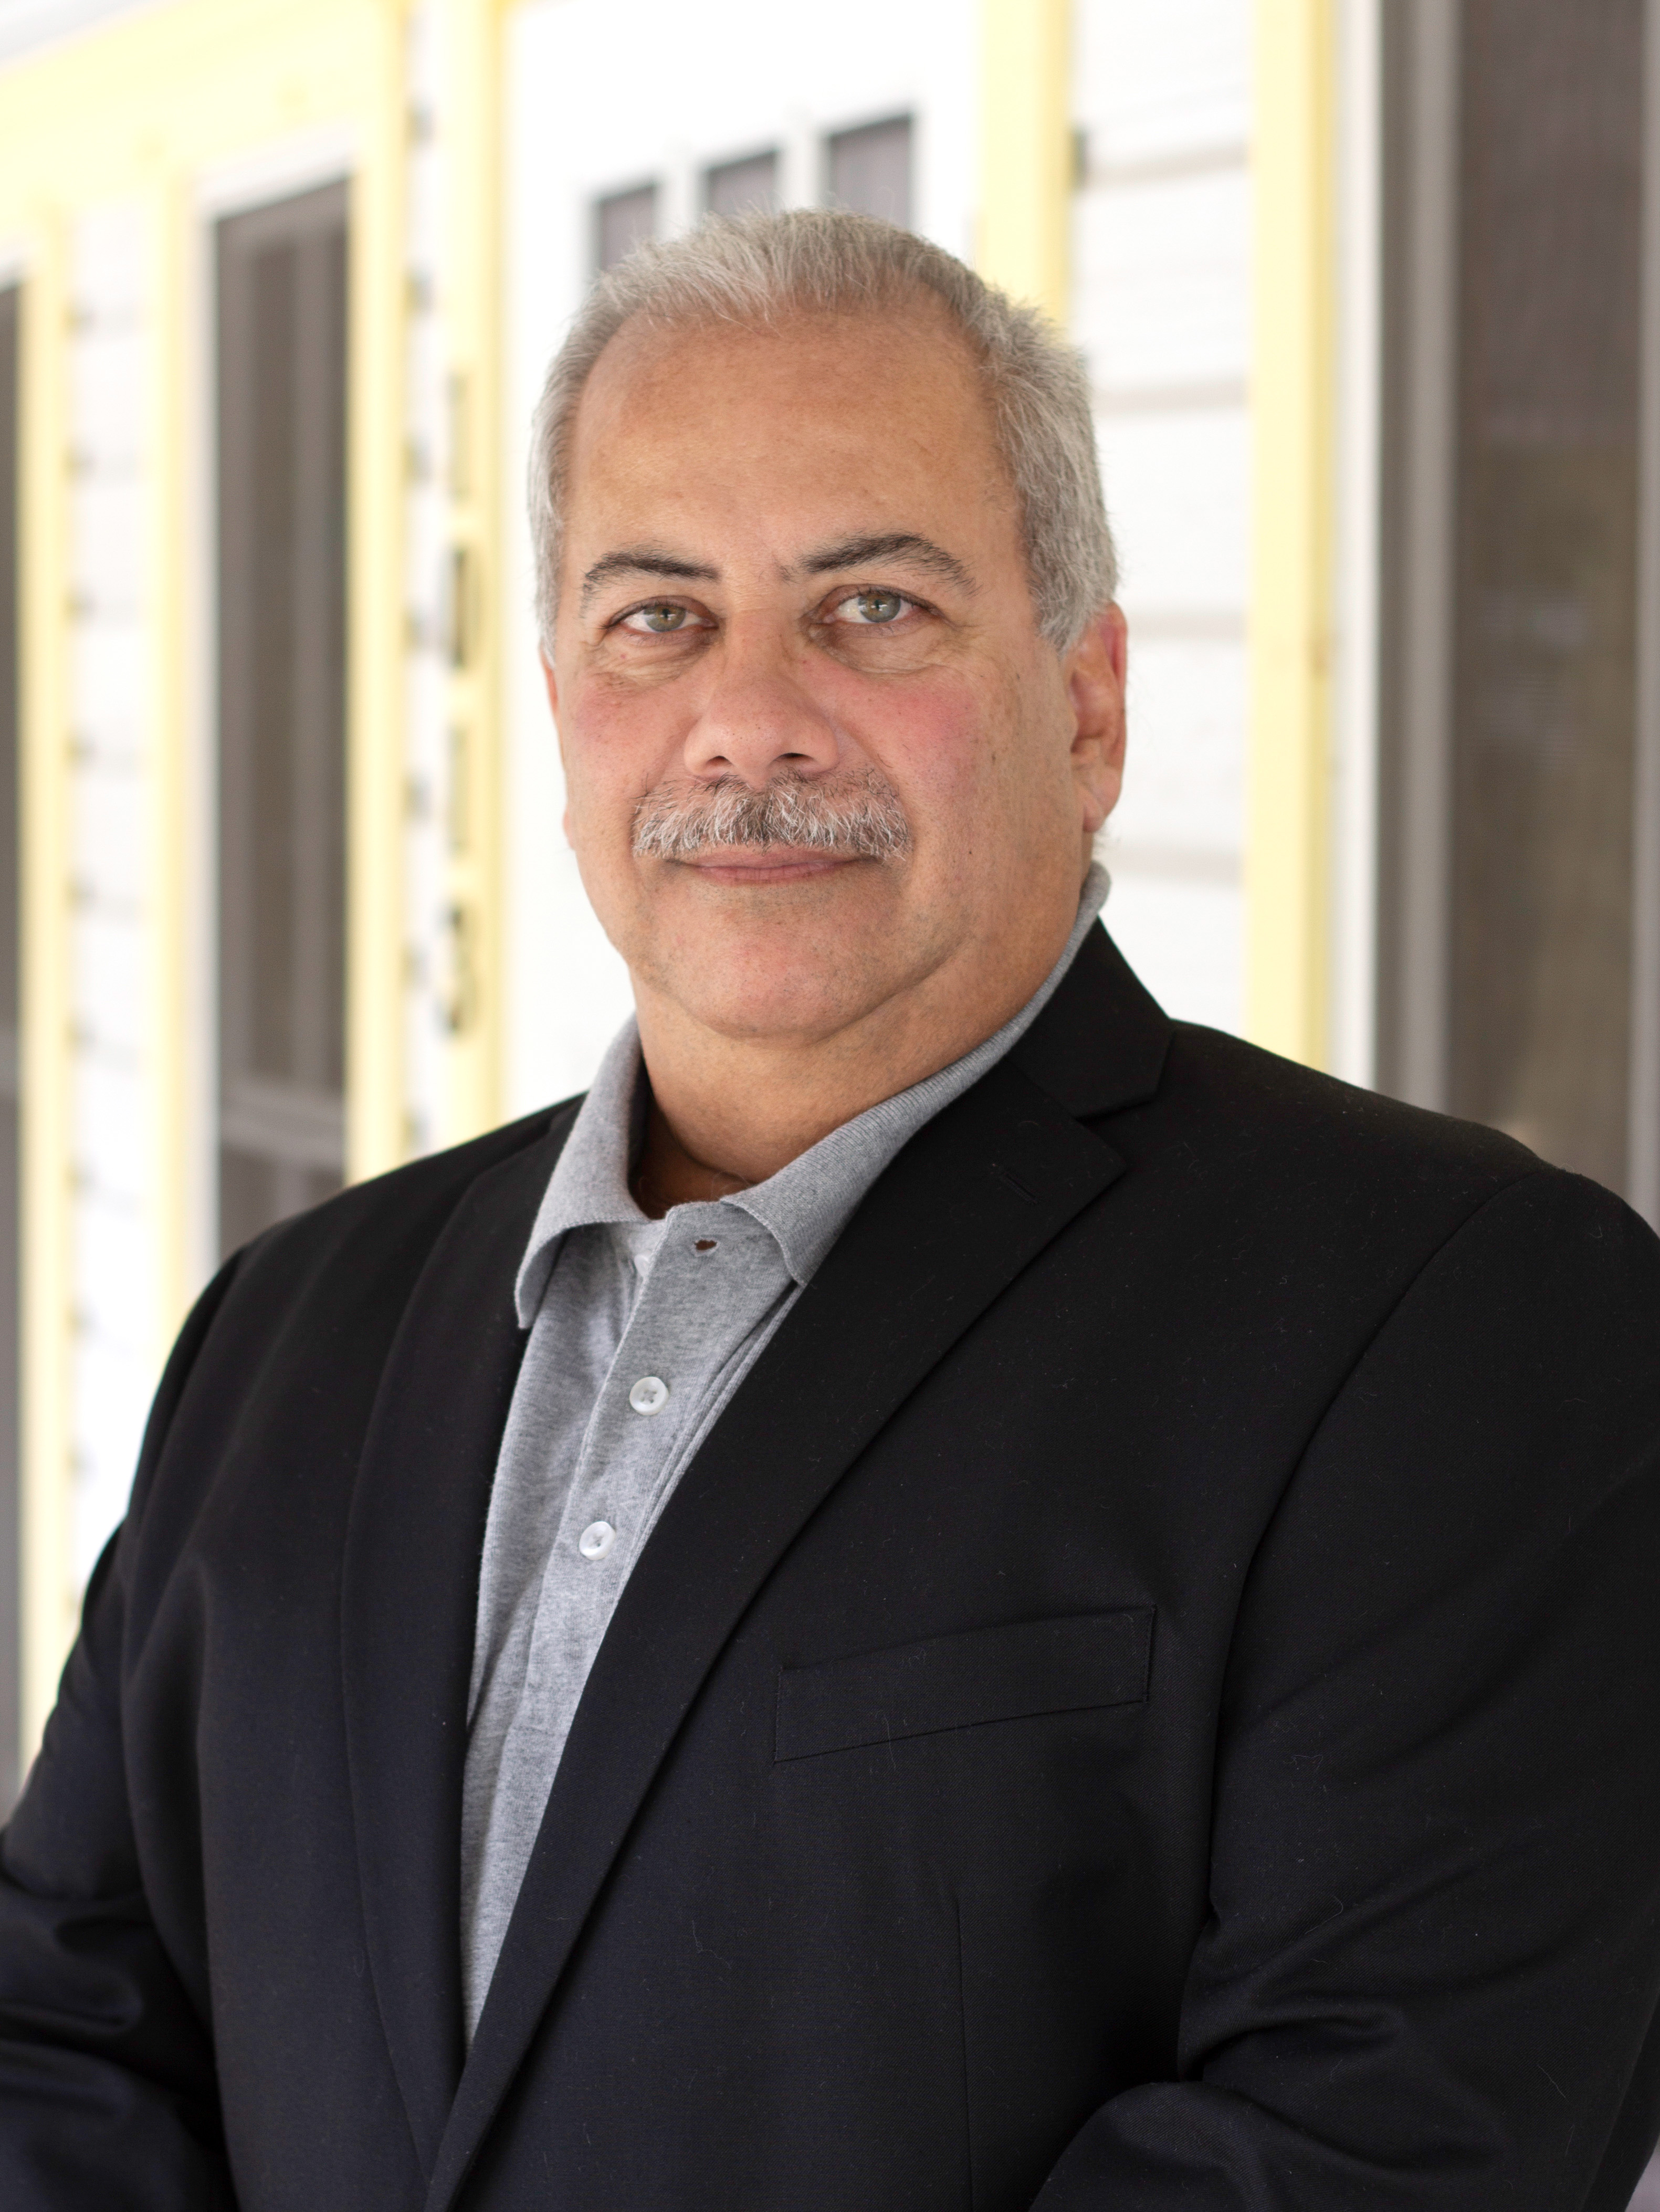 David Roque - Project Manager